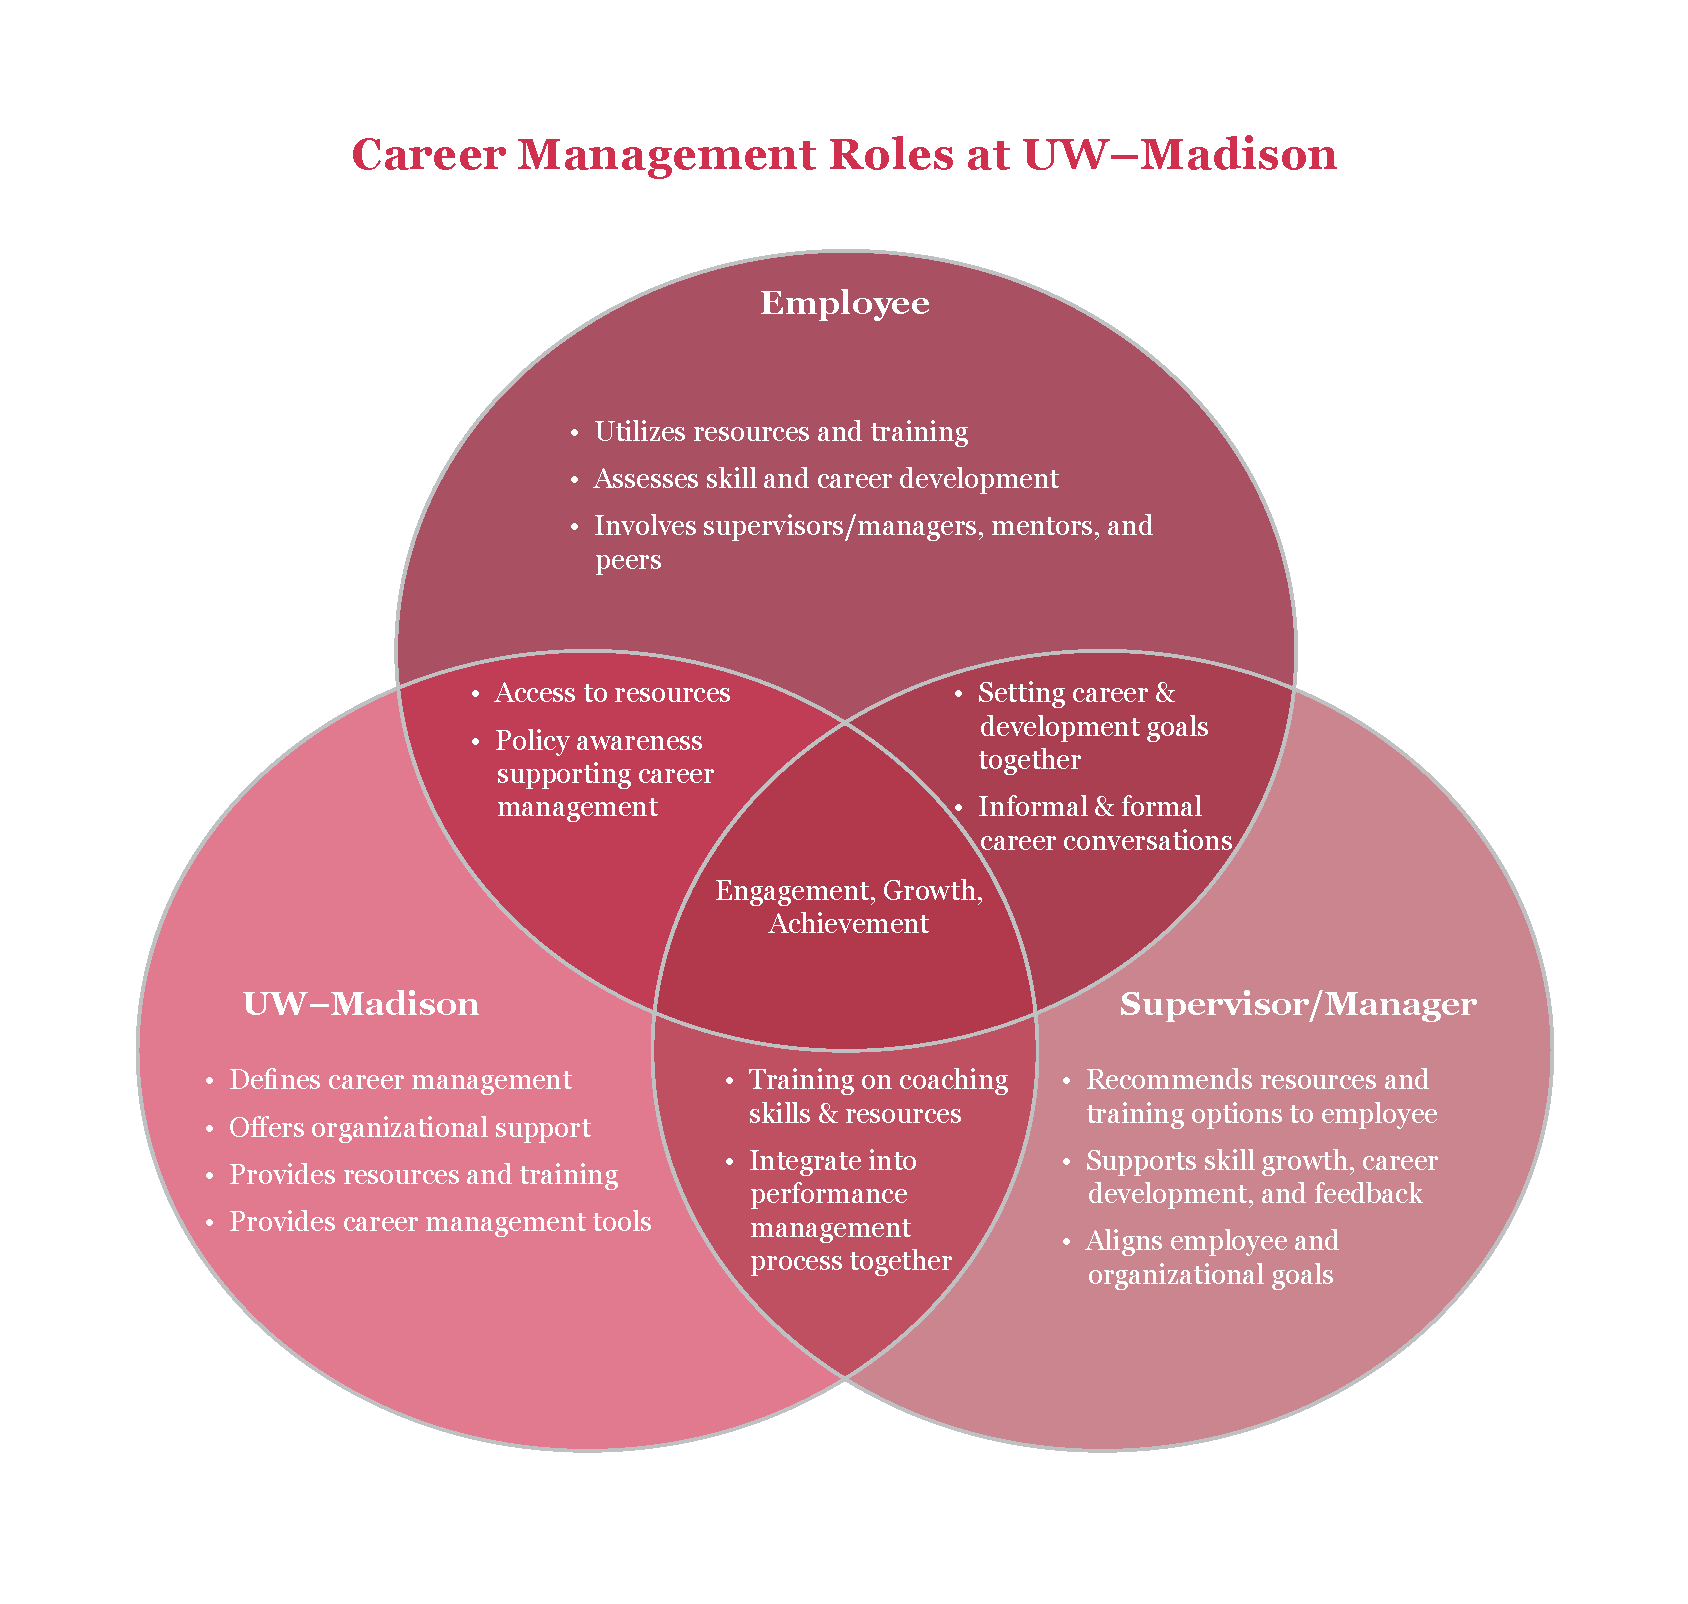 career management venn diagram image